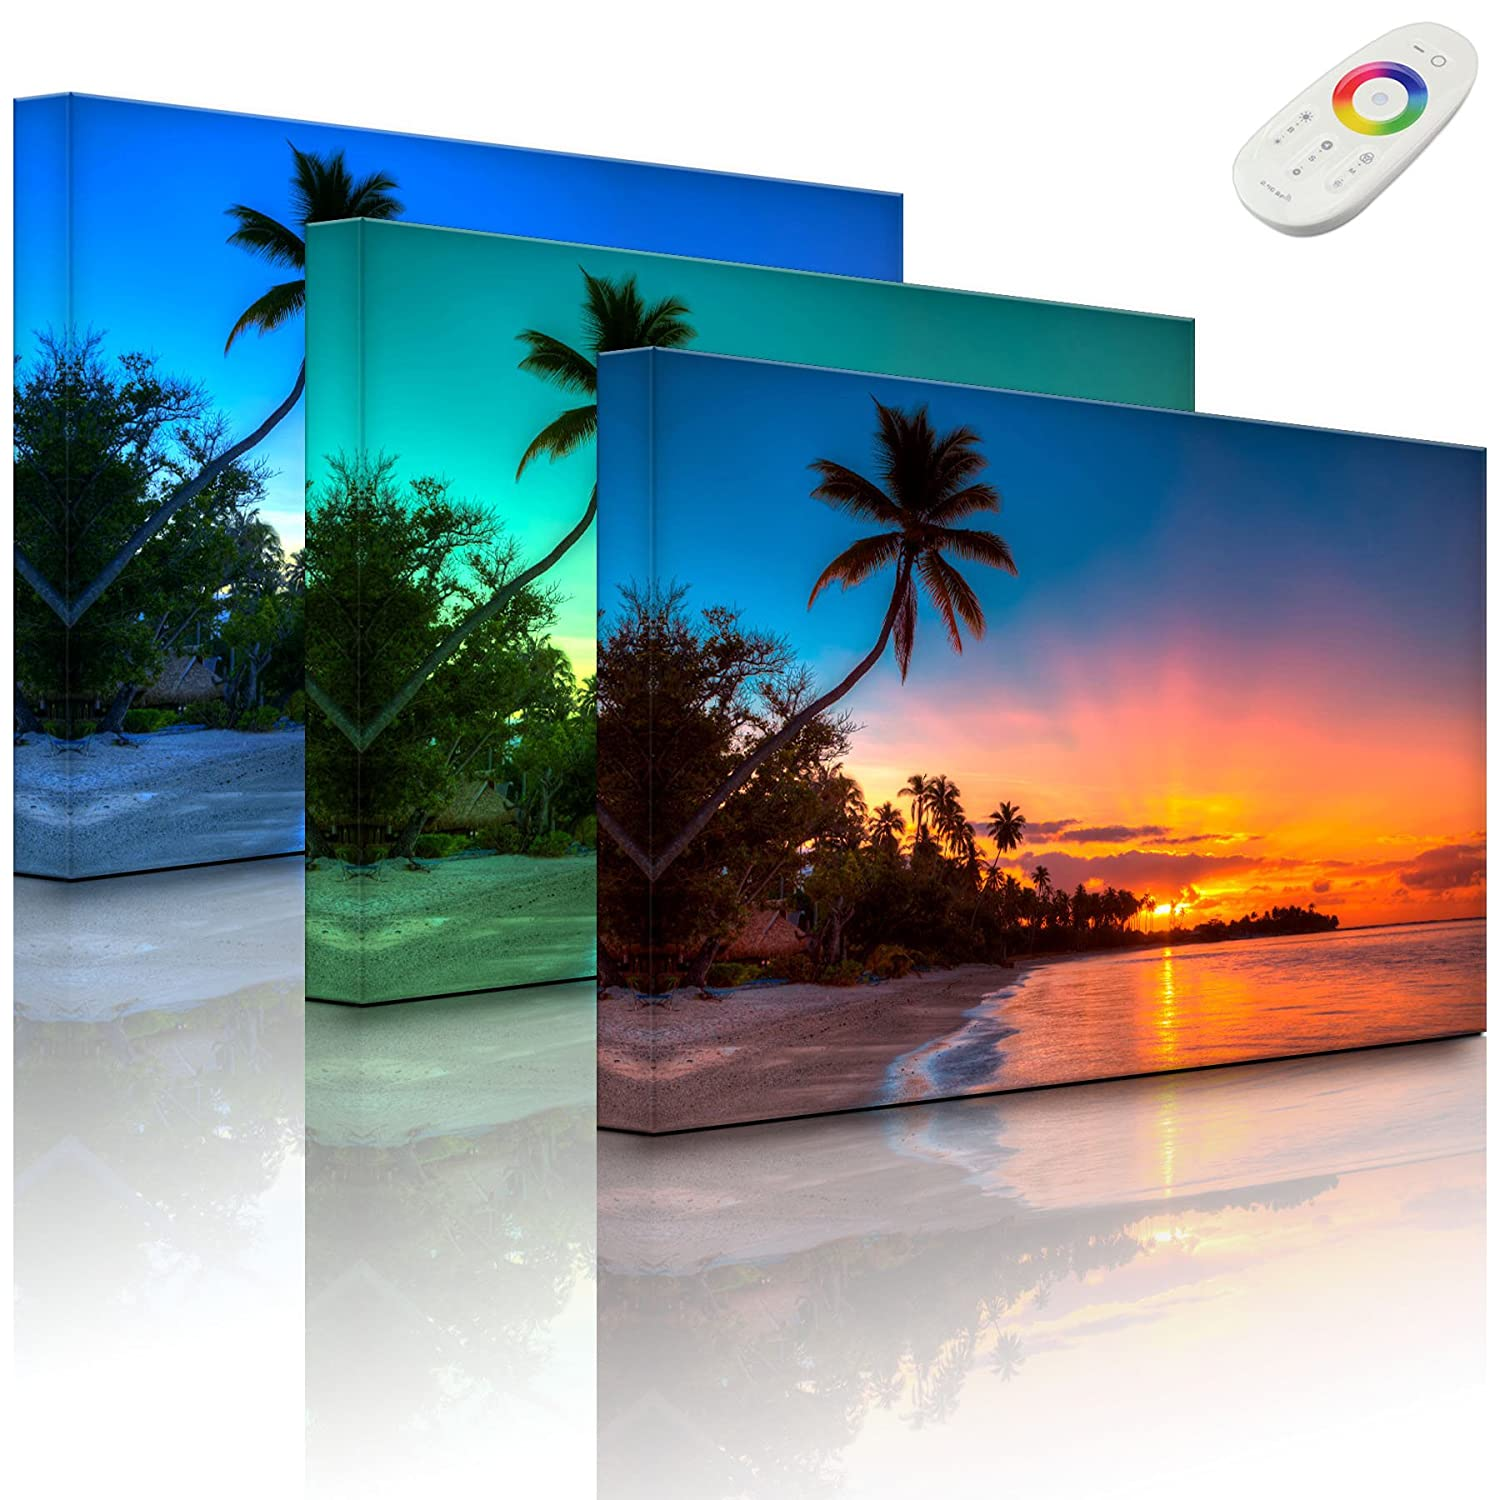 Picture with LED lighting - Palm trees on the beach - 60 x 40 cm - front lighted Rossteutscher GbR